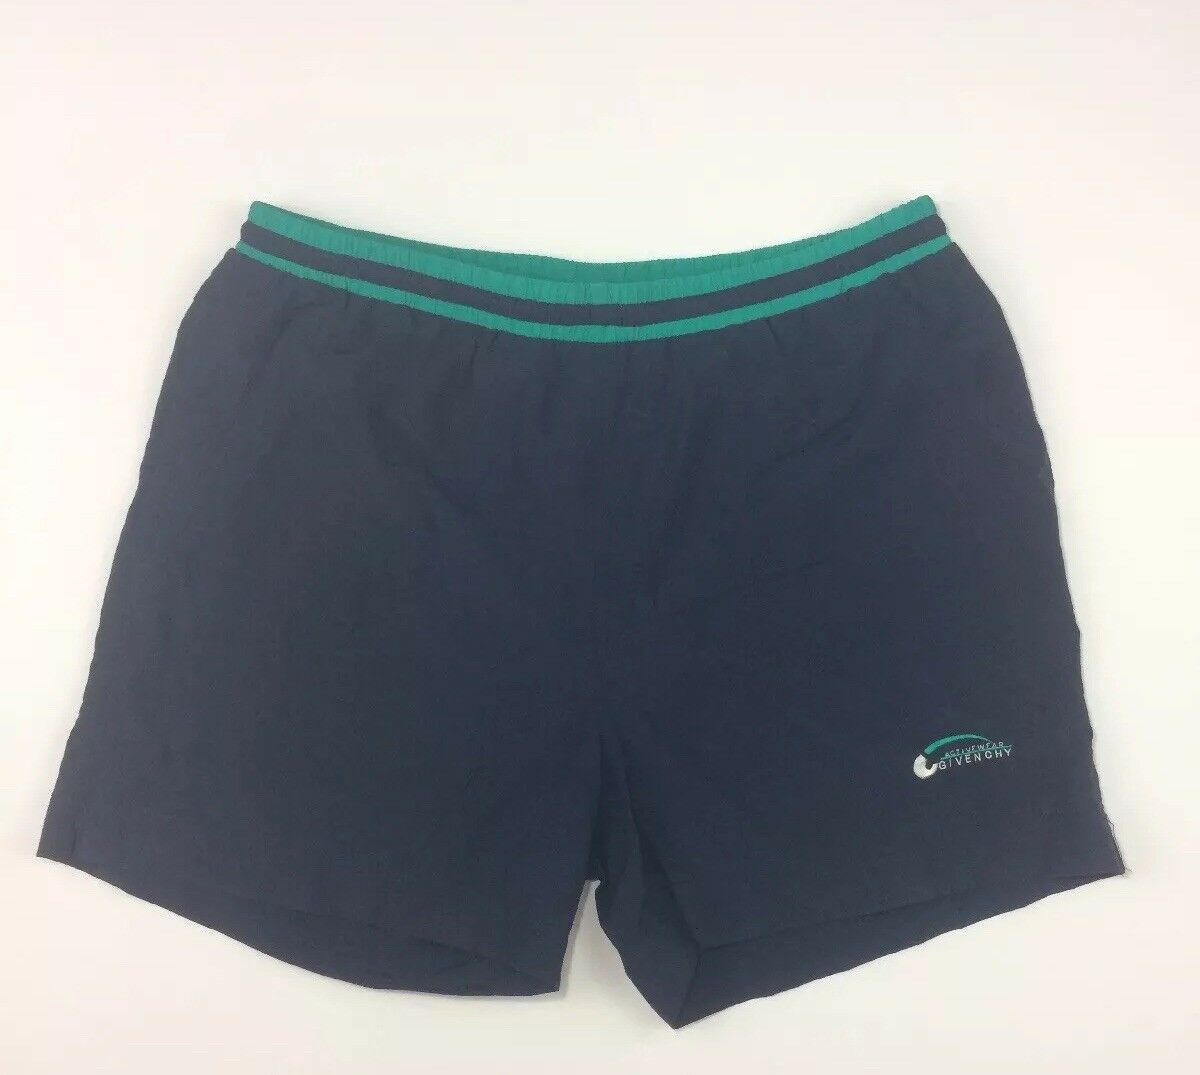 Vintage Givenchy Activewear Mens XL Shorts Swim Trunks Navy Turquoise